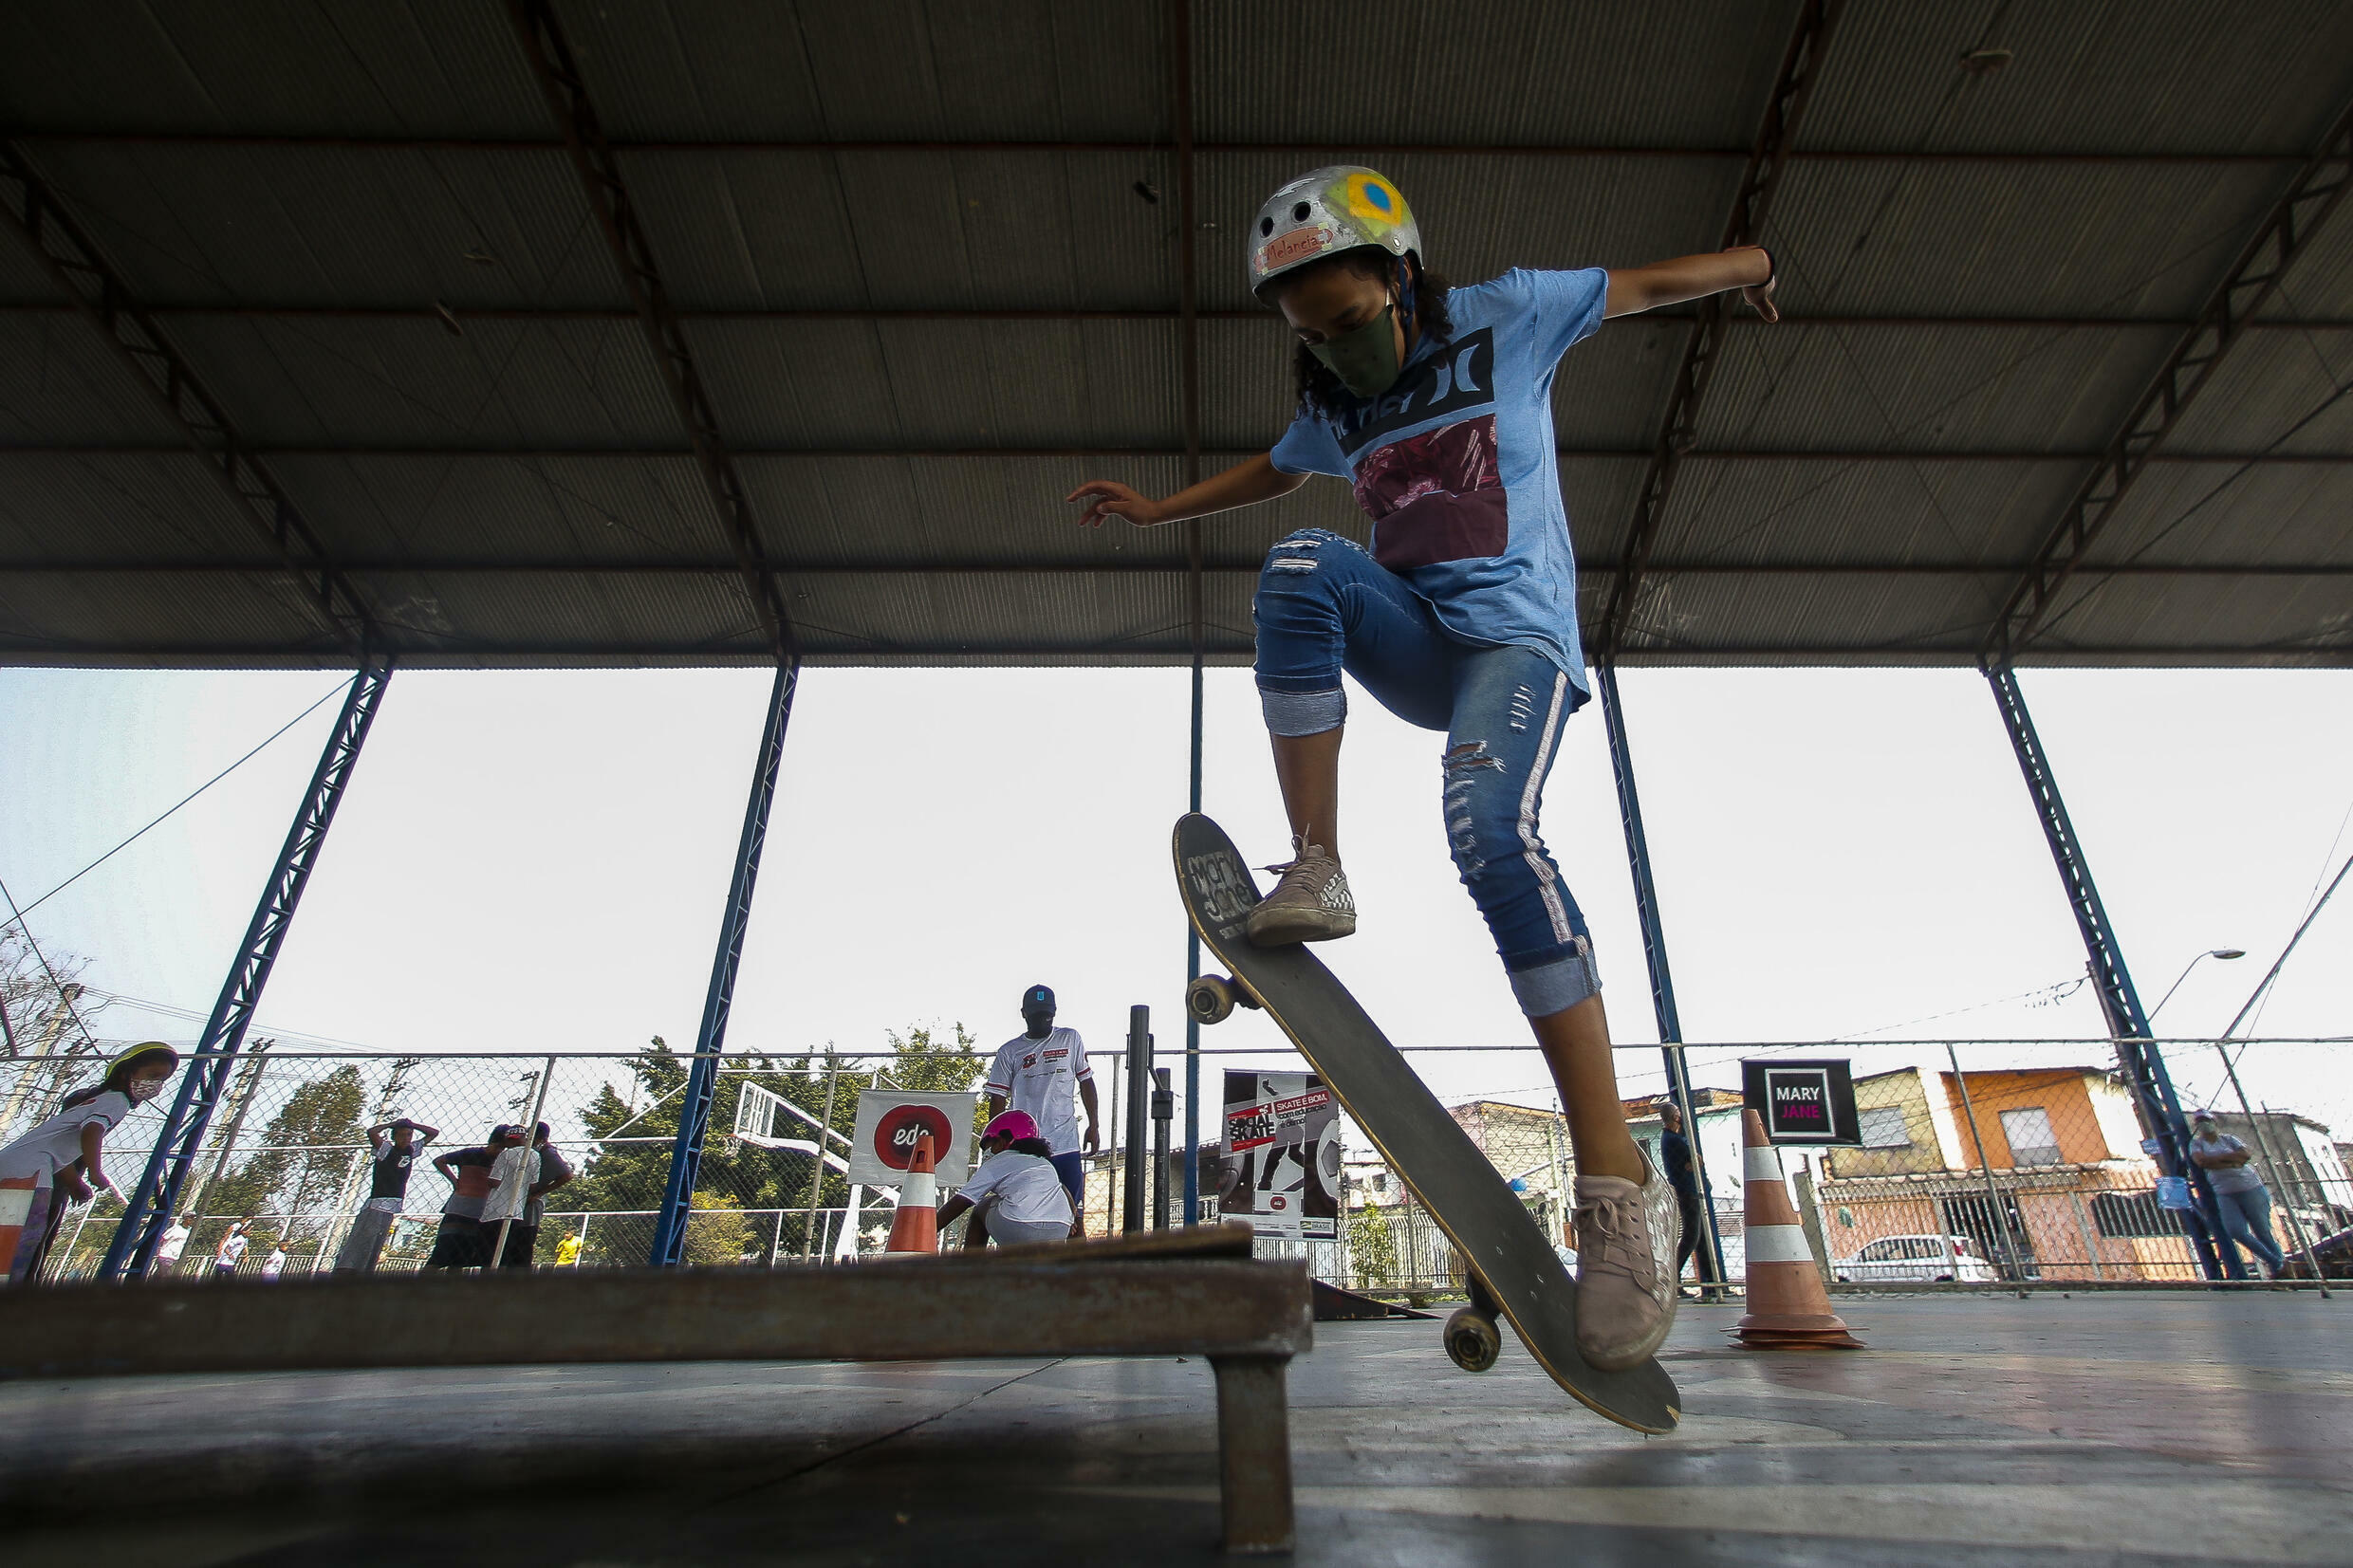 Young girls are embracing skateboarding in Brazil in the wake of the silver medal Olympic performance by their compatriot Rayssa Leal, at age 13